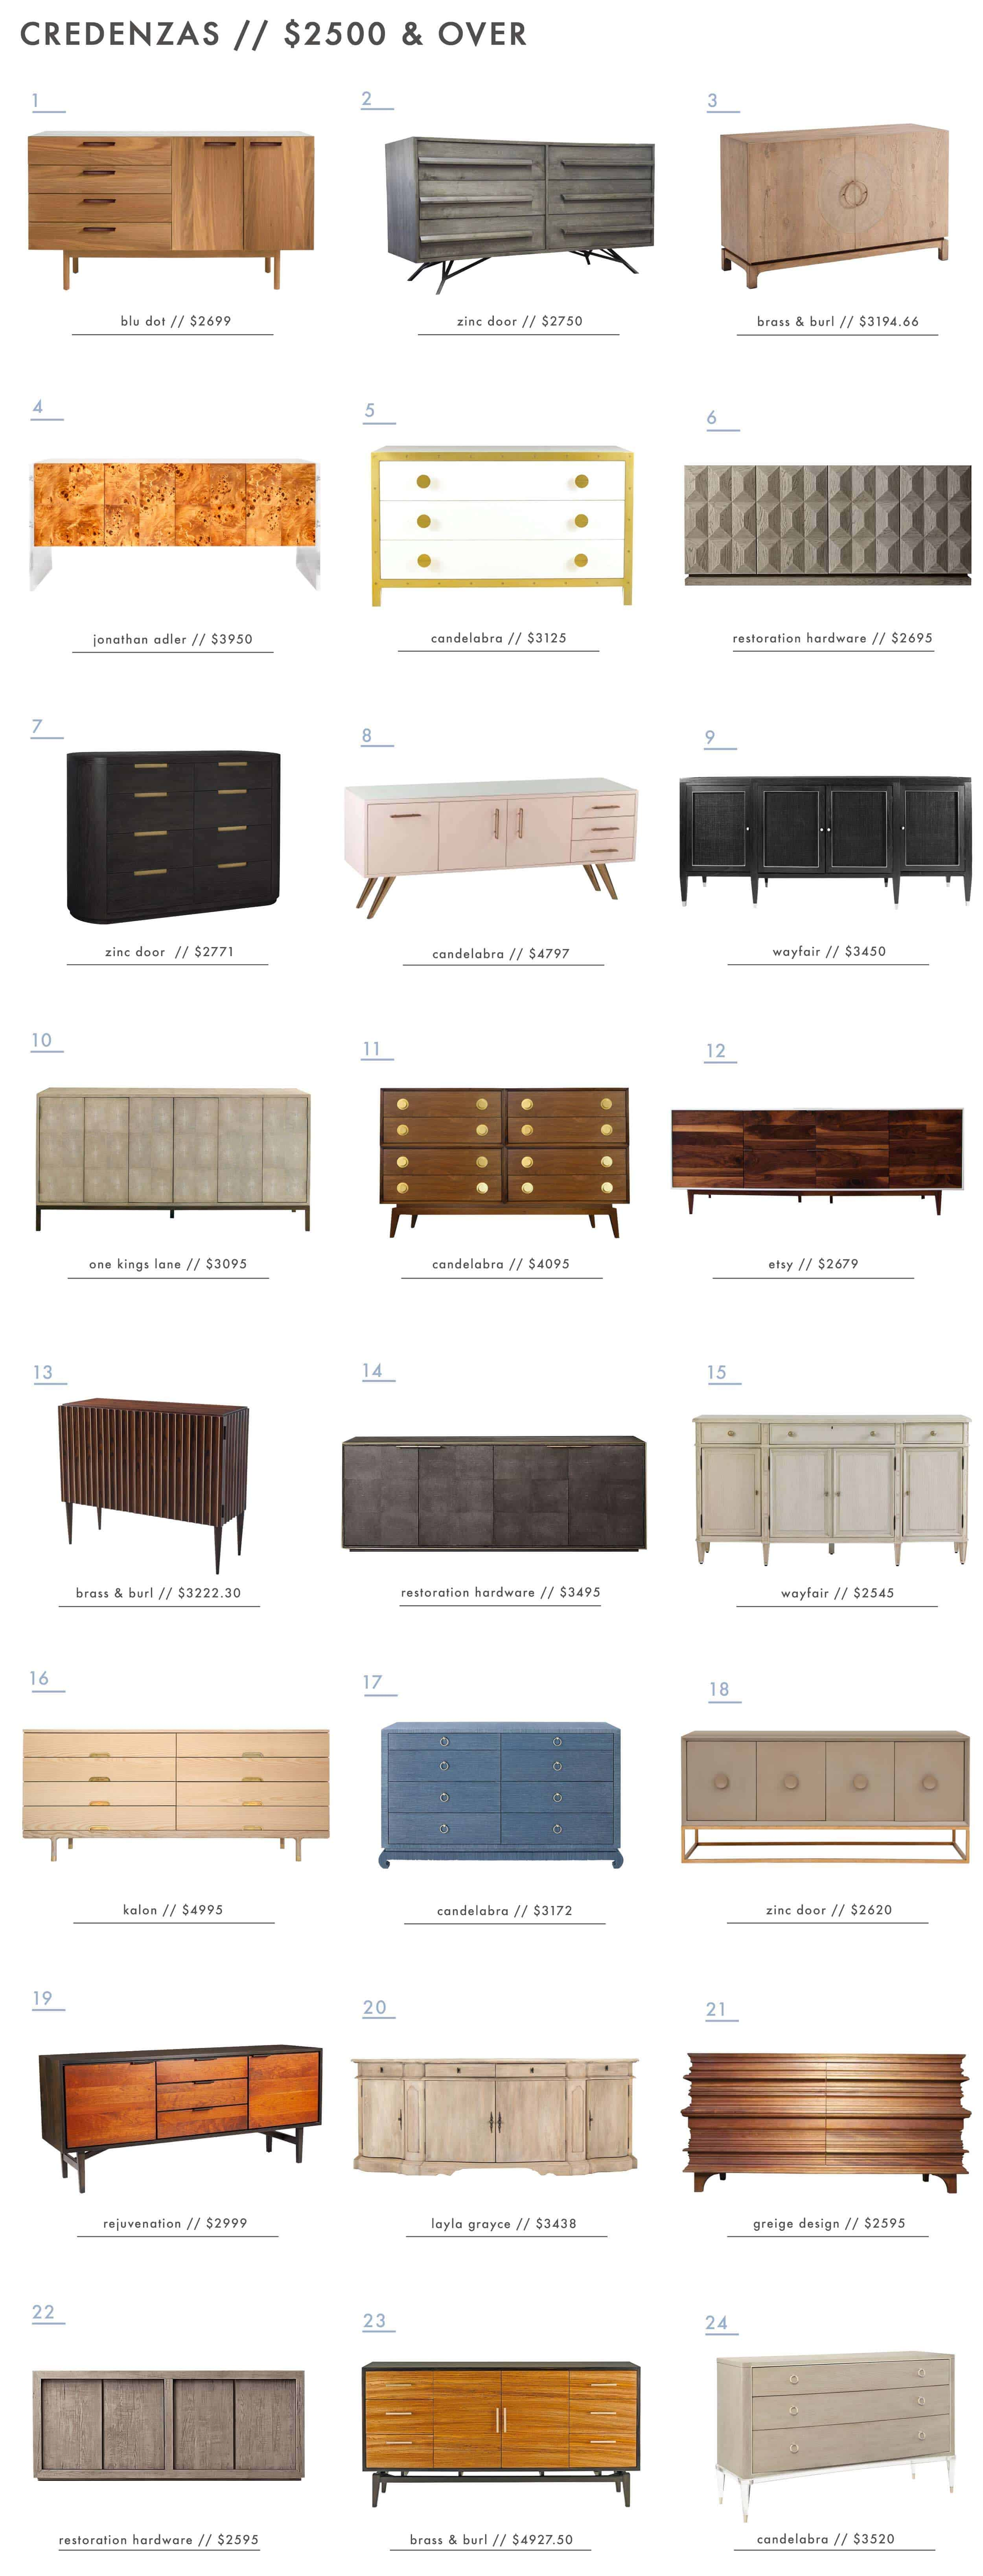 emily-henderson_credenza_roundup_over-2500